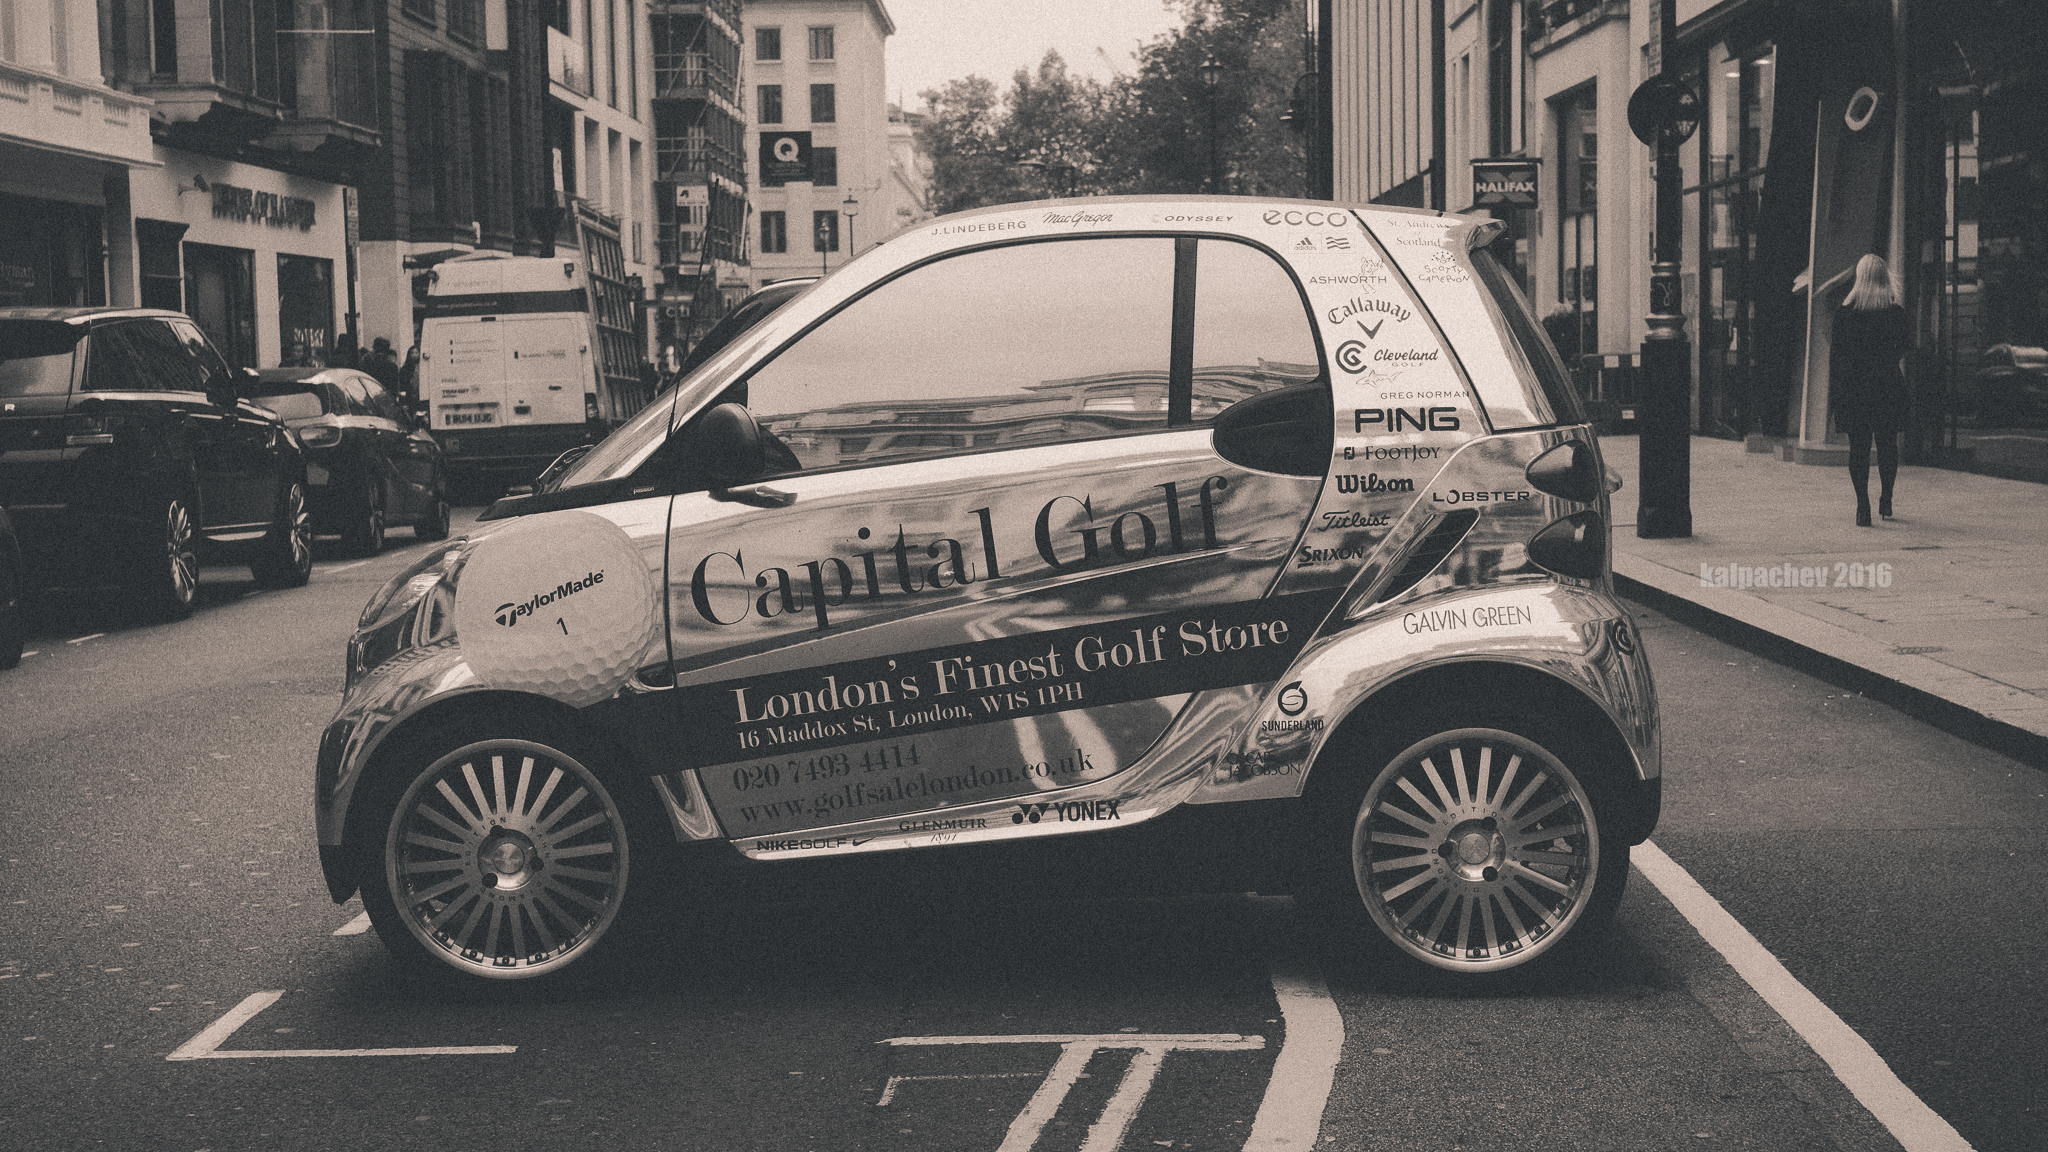 Capital golf car London